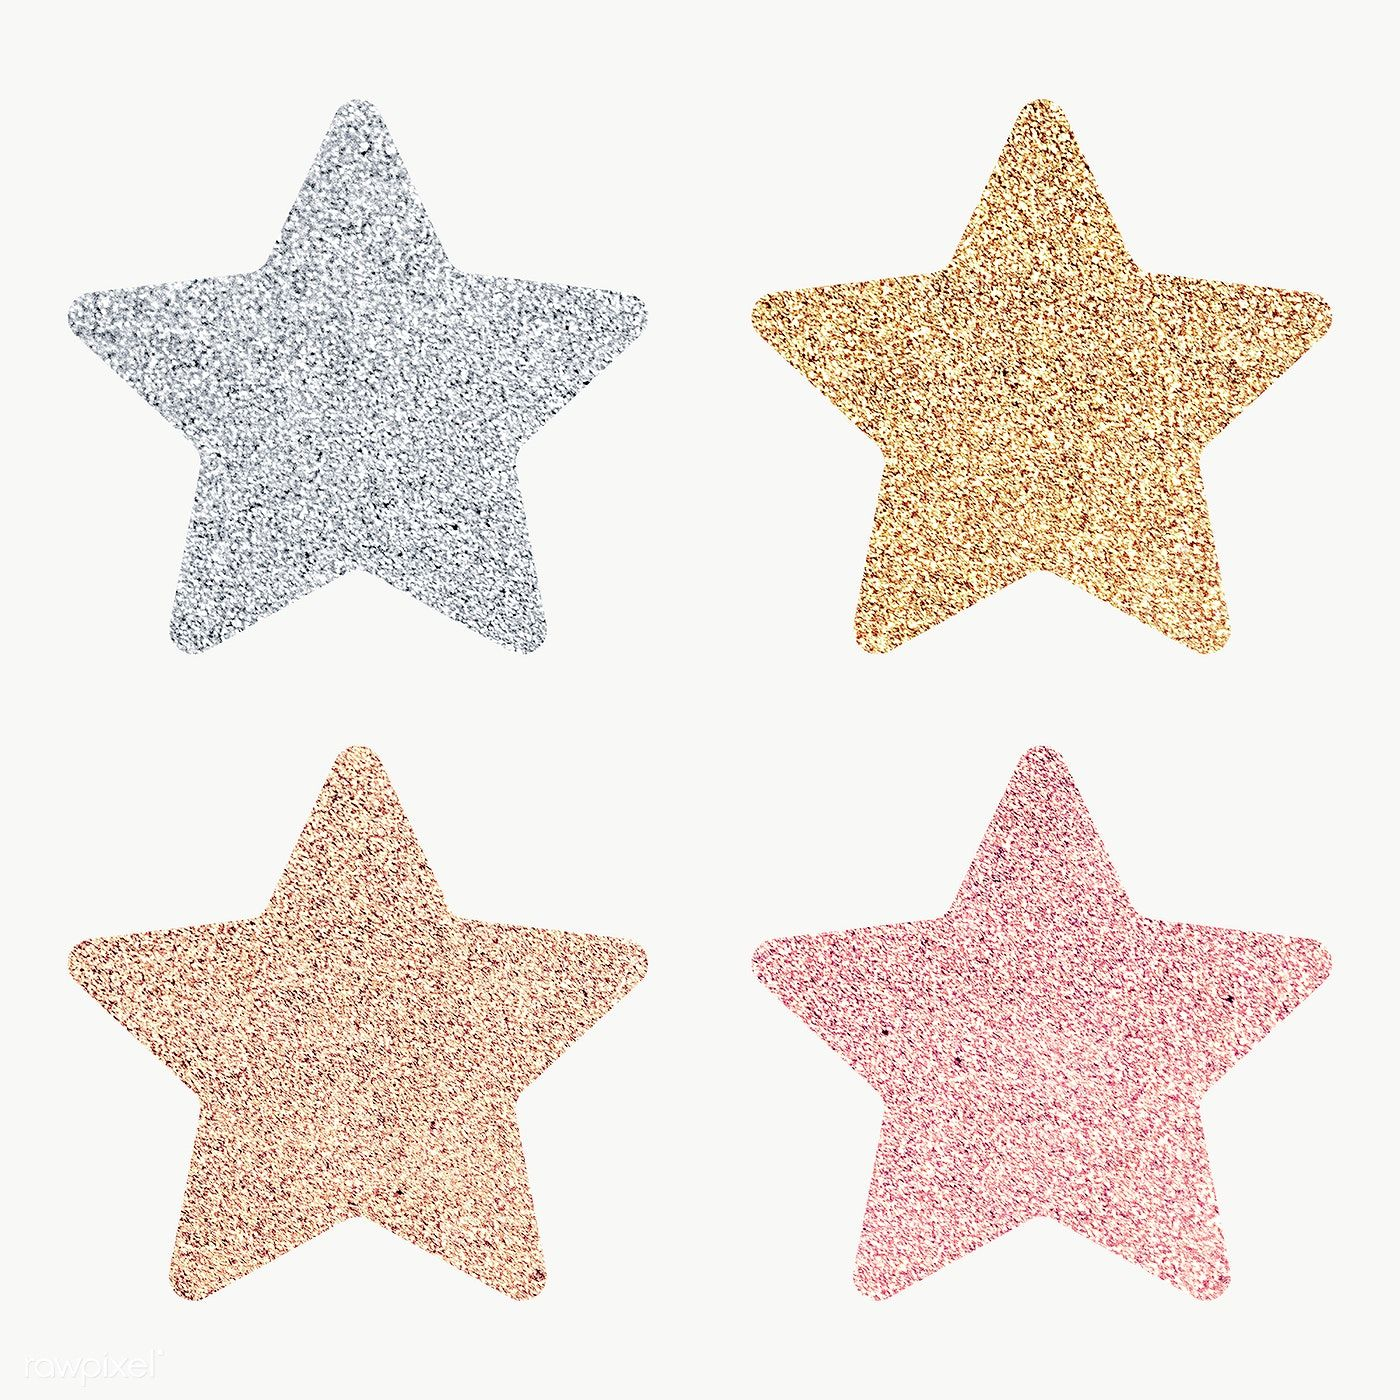 Glitter Star Sticker Set Transparent Png Free Image By Rawpixel